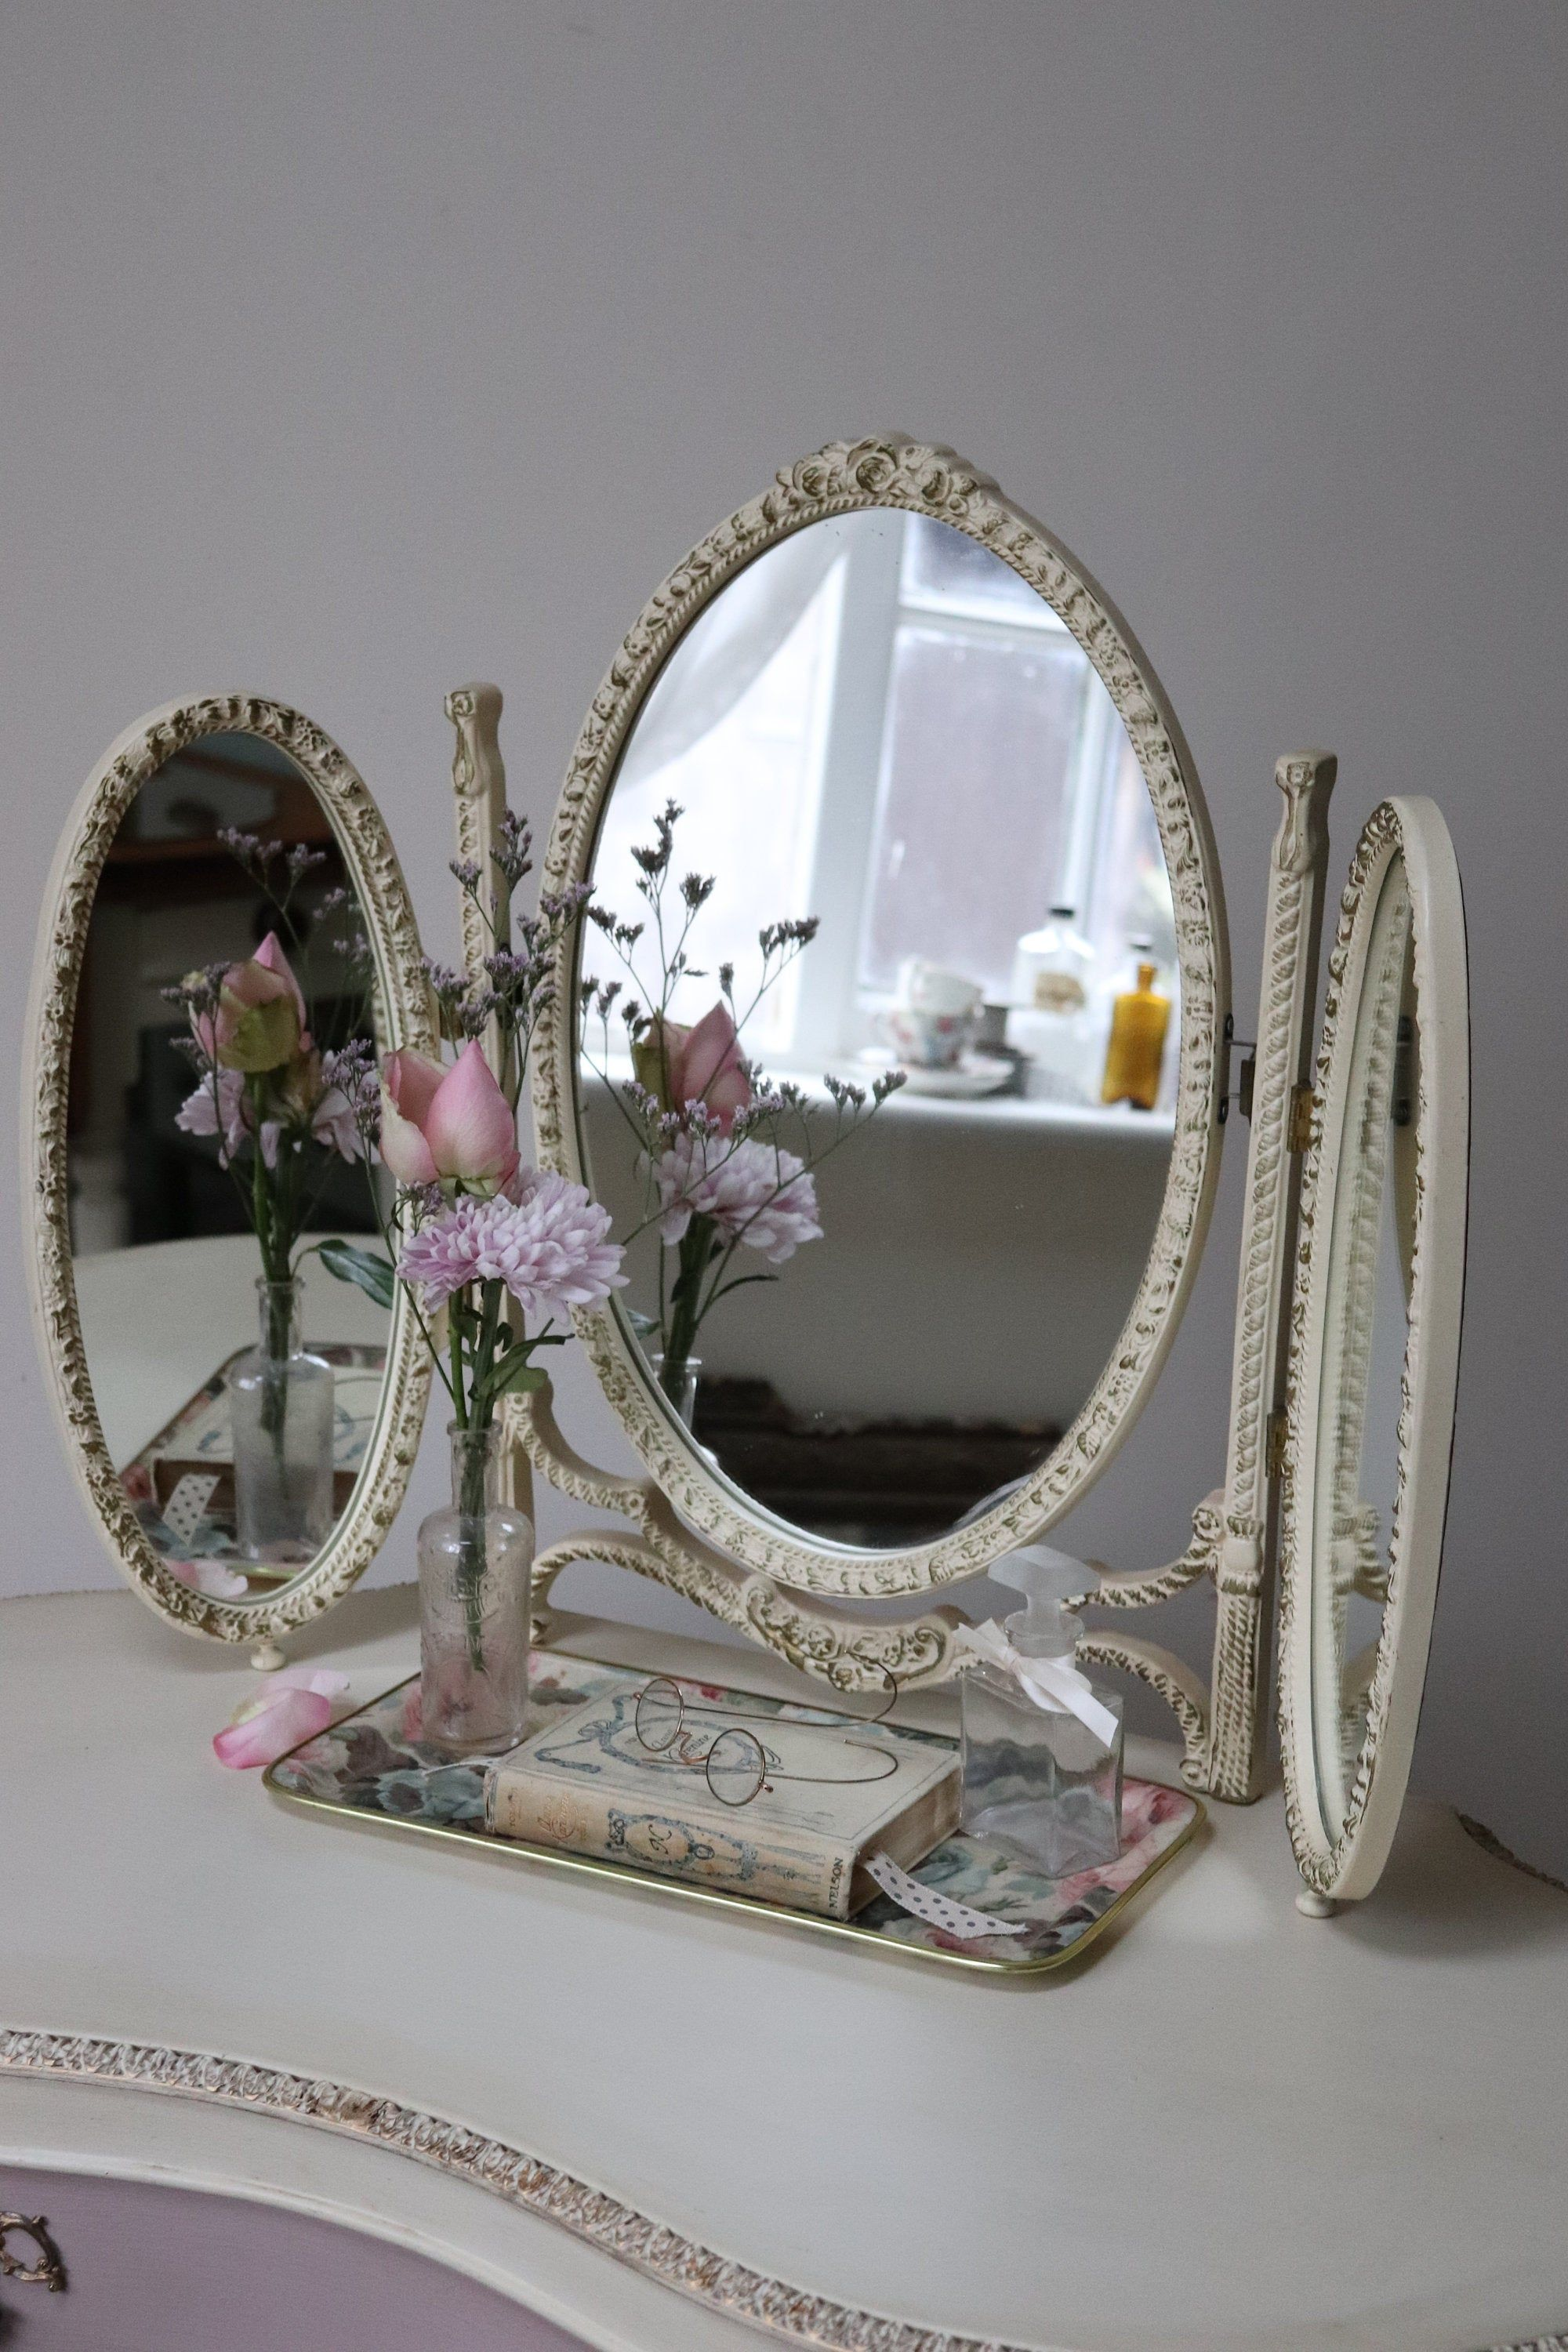 Antique Victorian Tabletop Ornate Gold Gilt Cast Iron Vanity Mirror With Swivel Leg Stand Swivel Tv Stand Victorian Tabletop Vintage Mirror